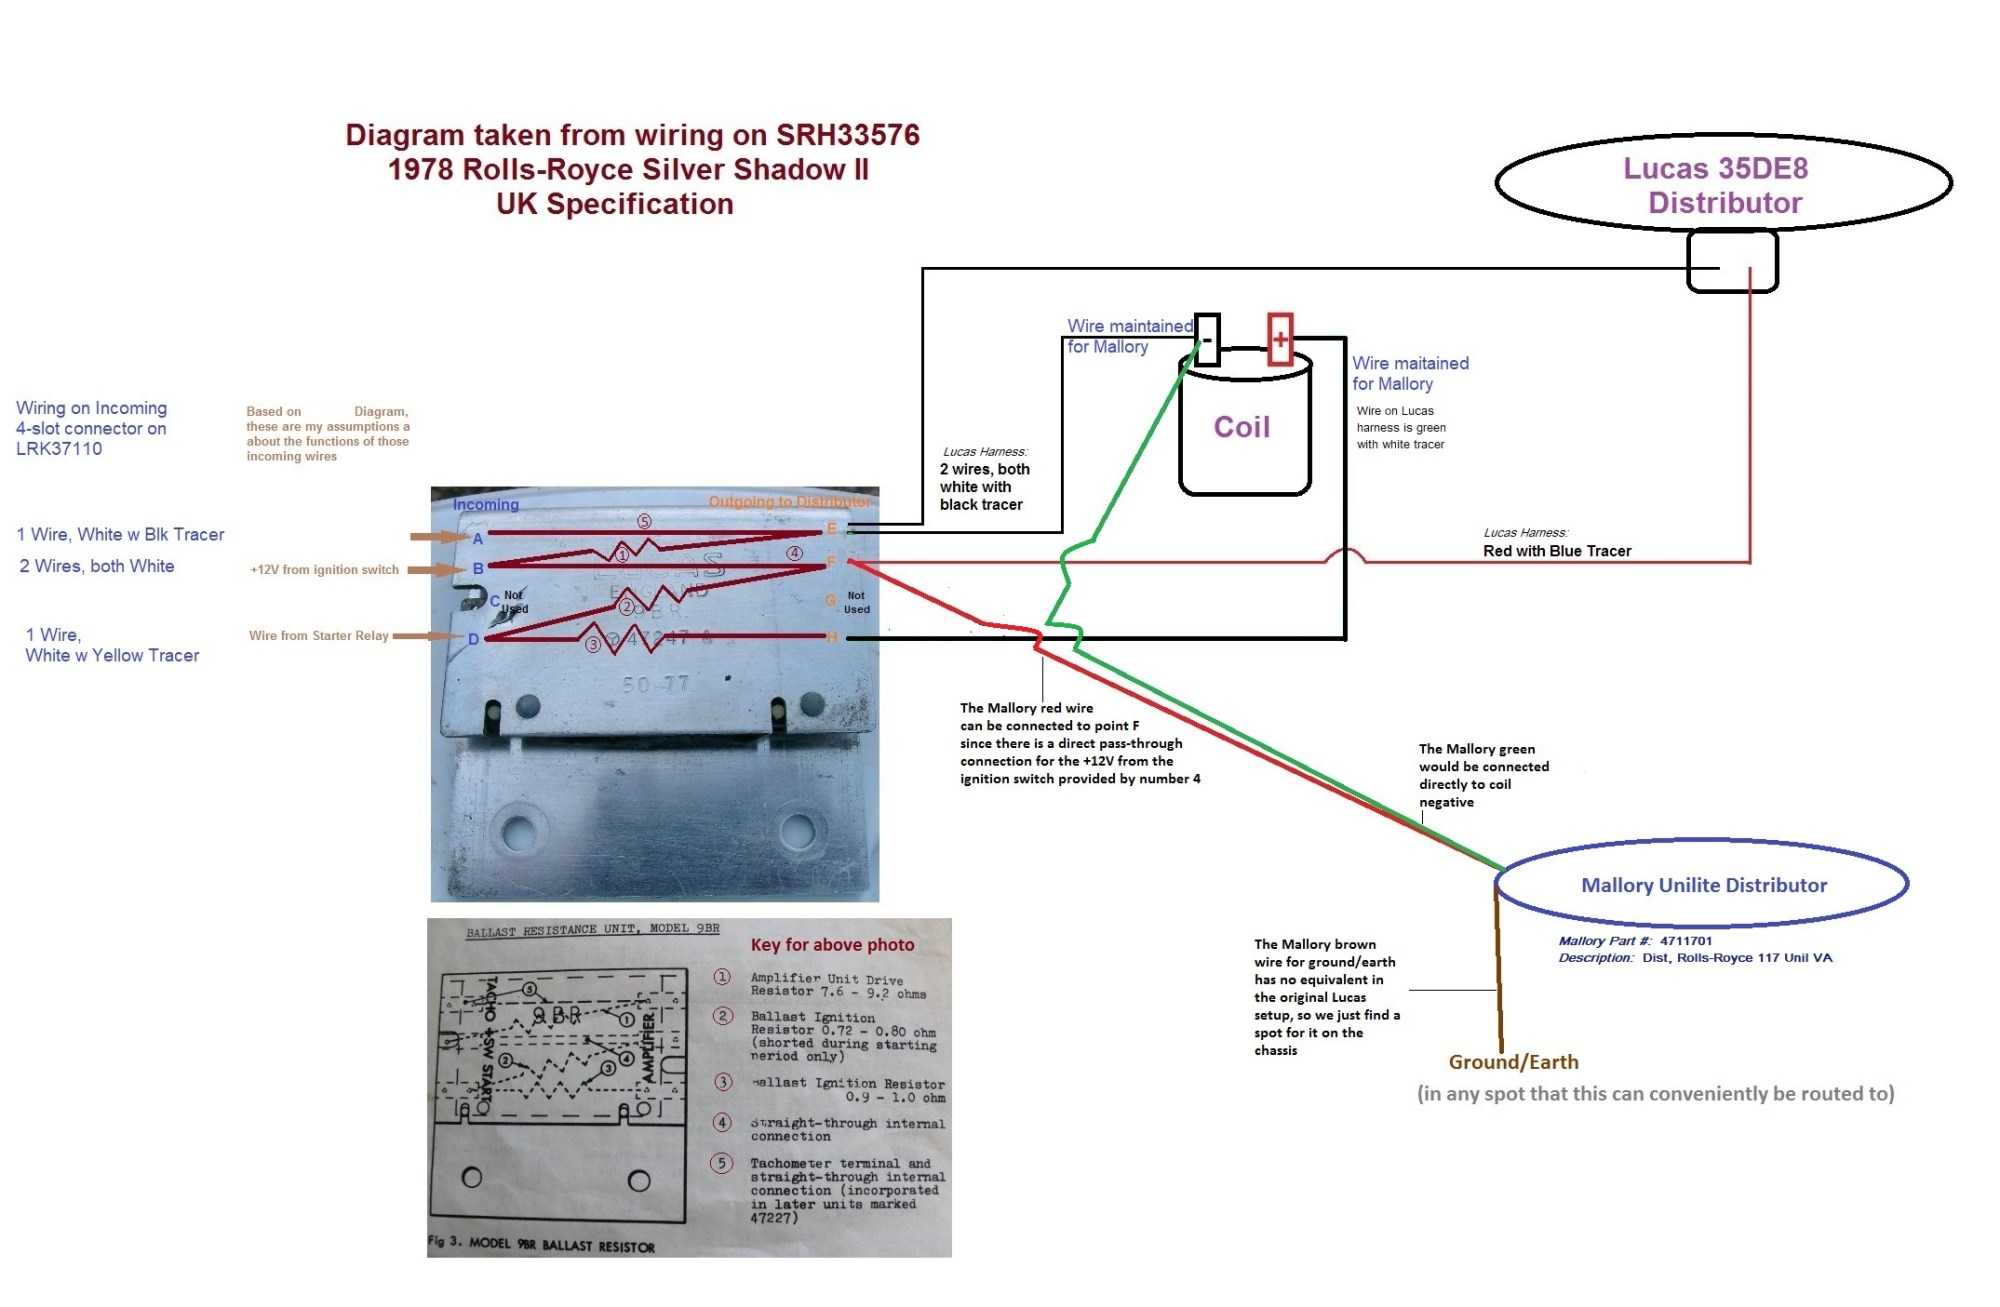 hight resolution of also added the part number in the diagram as it can still be found via